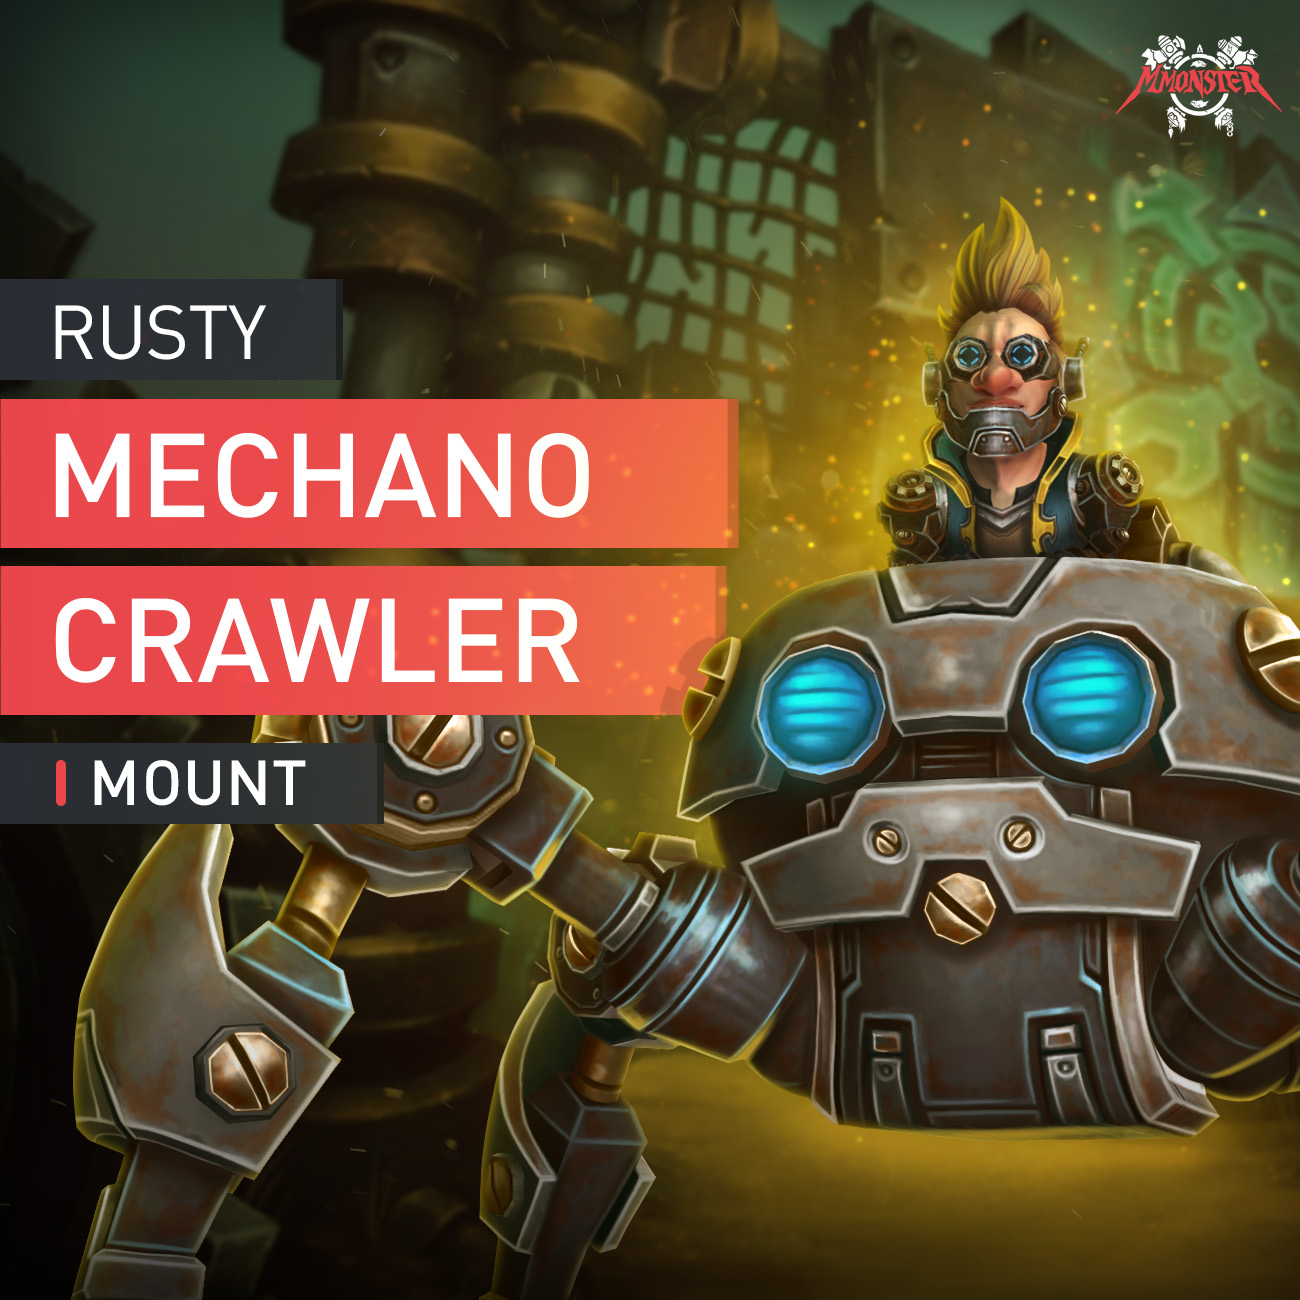 Rusty Mechanocrawler Mount